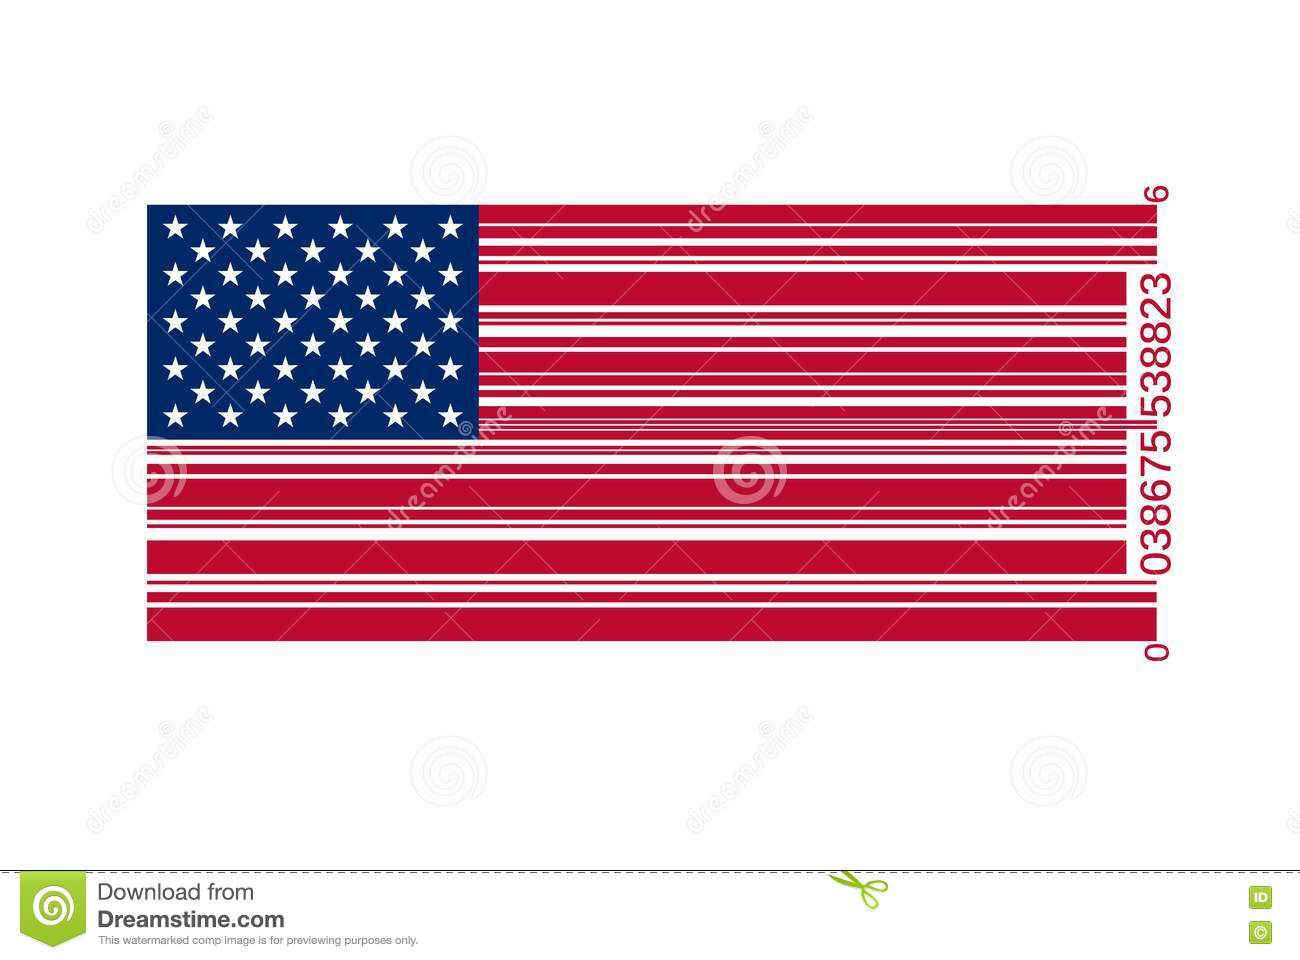 American Flag As Bar Code Royalty Free Stock Photo   Image  19425225 xE3LKnNh